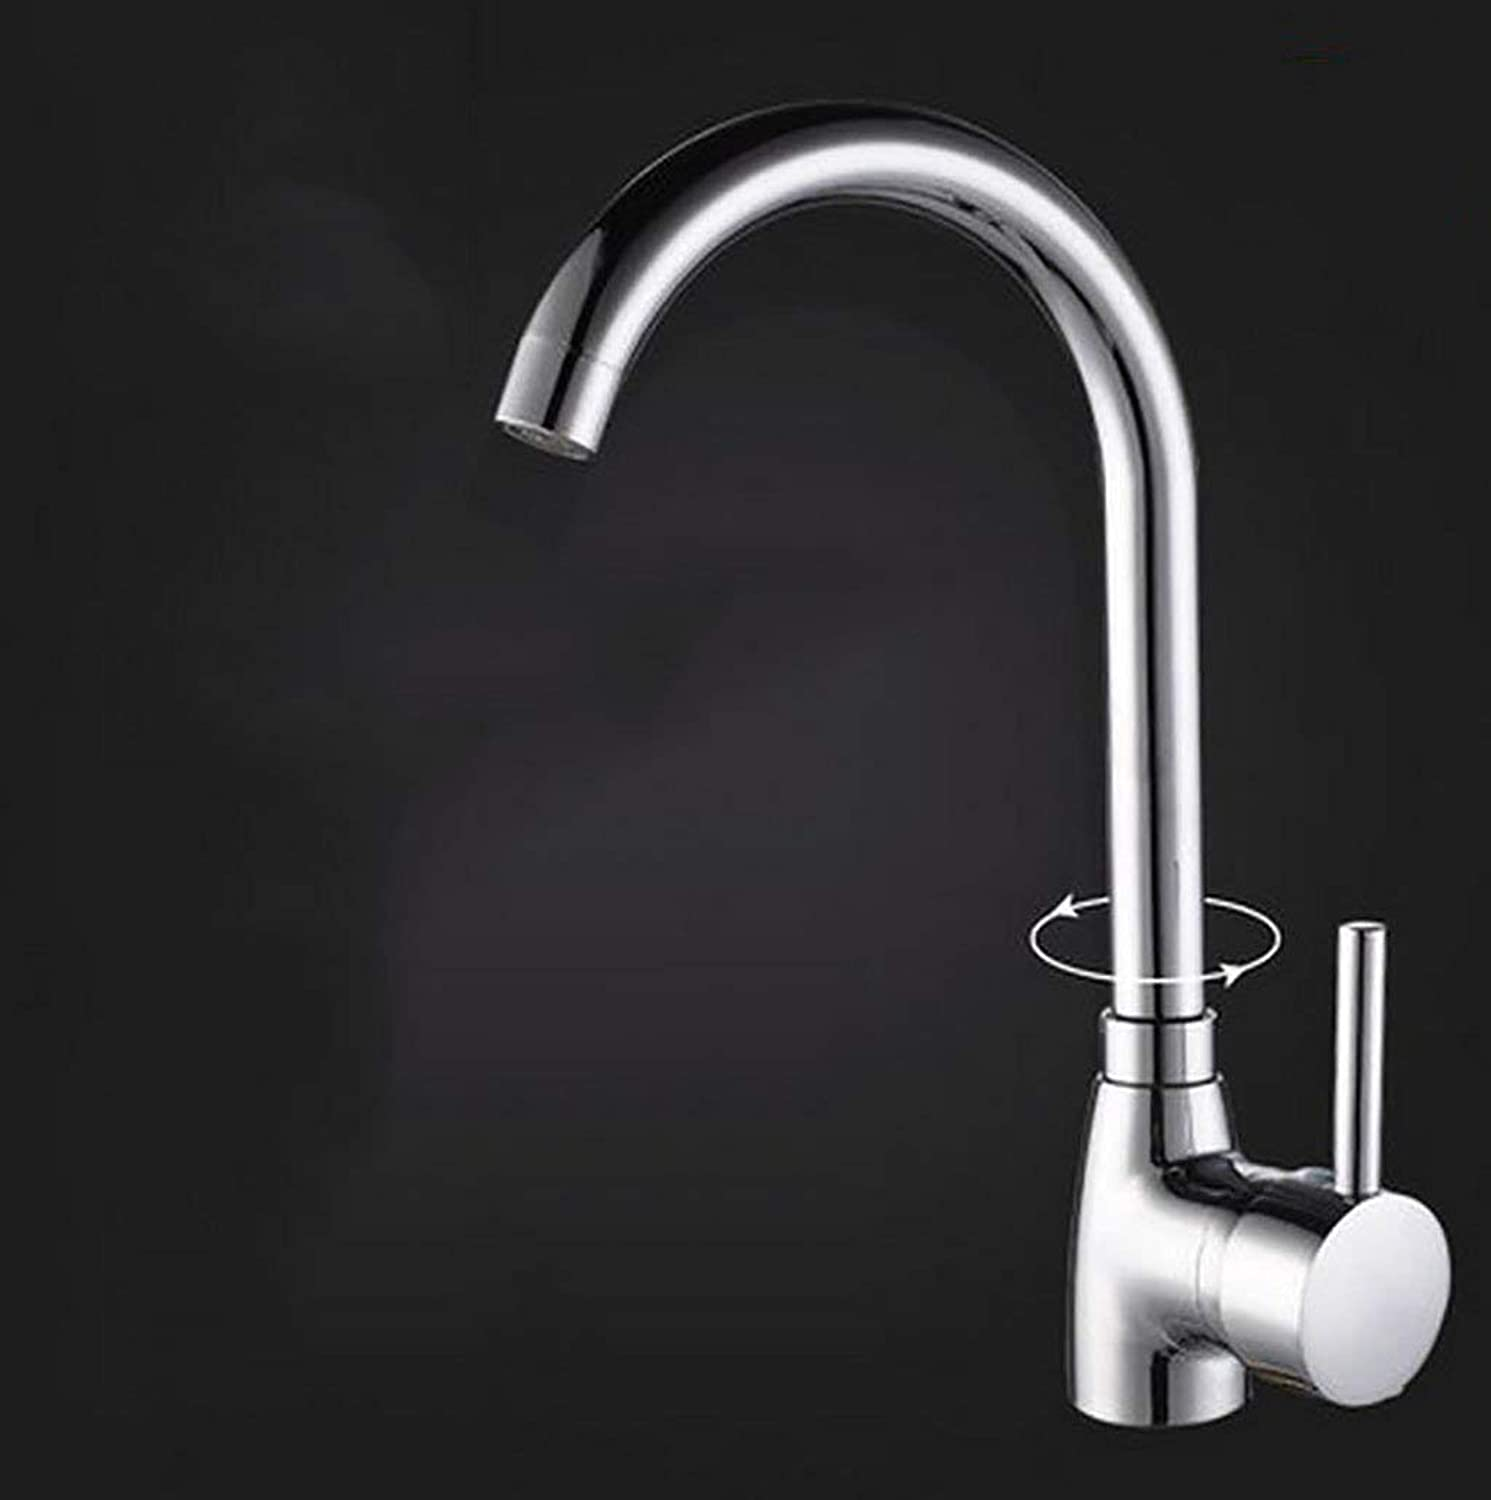 DYR Faucet Kitchen Faucets, Can Turn the Faucet, Spleen Faucet (color  1 )